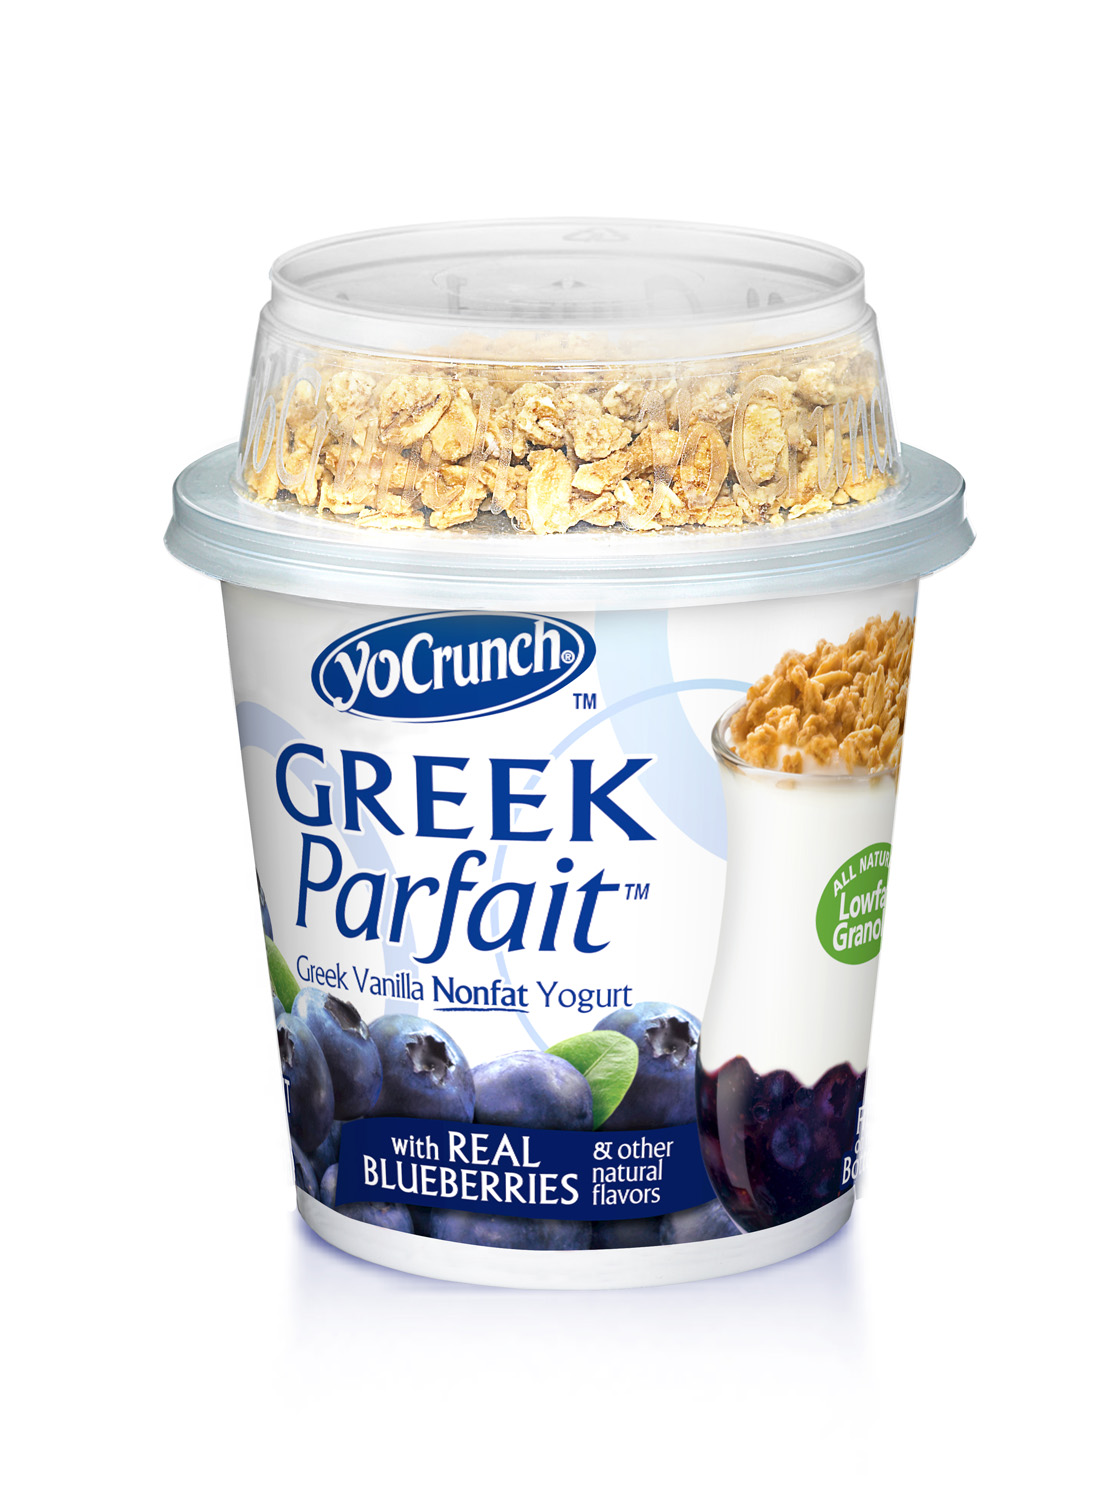 Greek Parfait - Blueberry